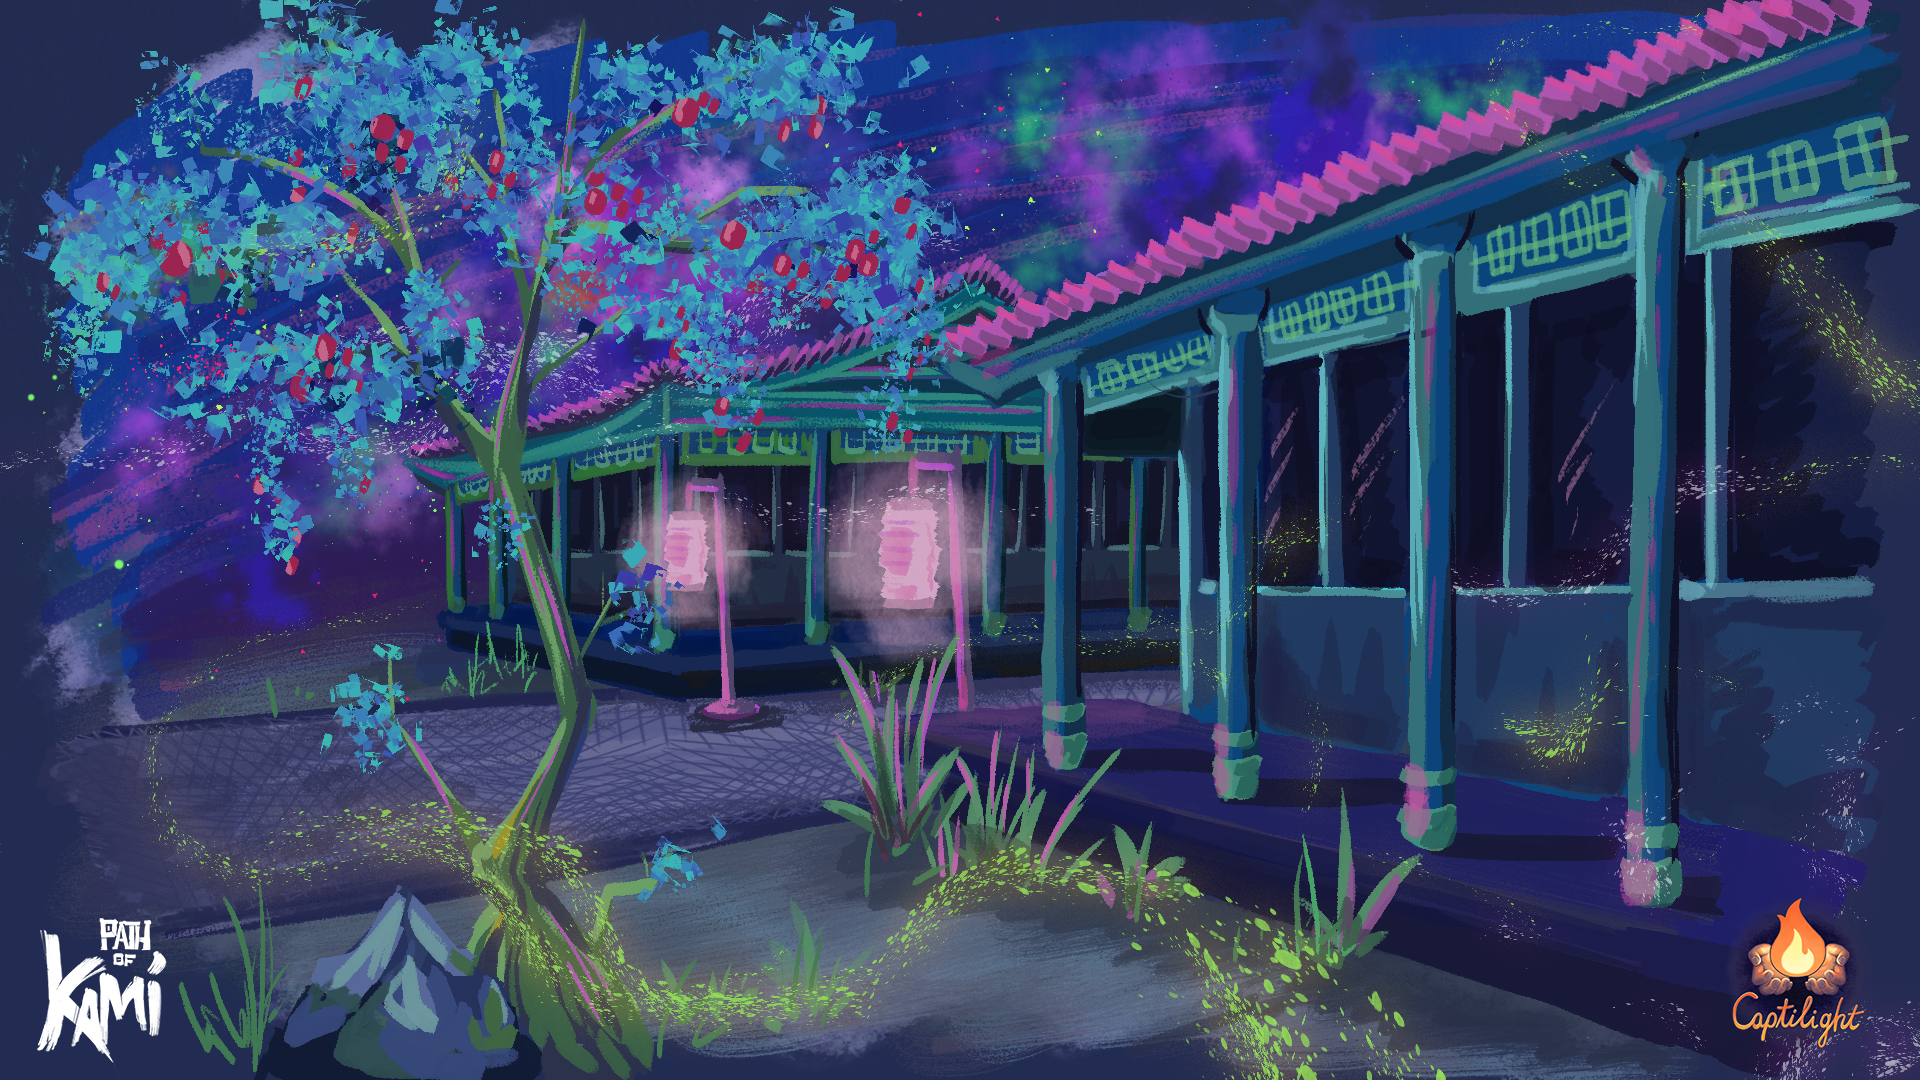 A night scene among a temple with glowing lanterns.